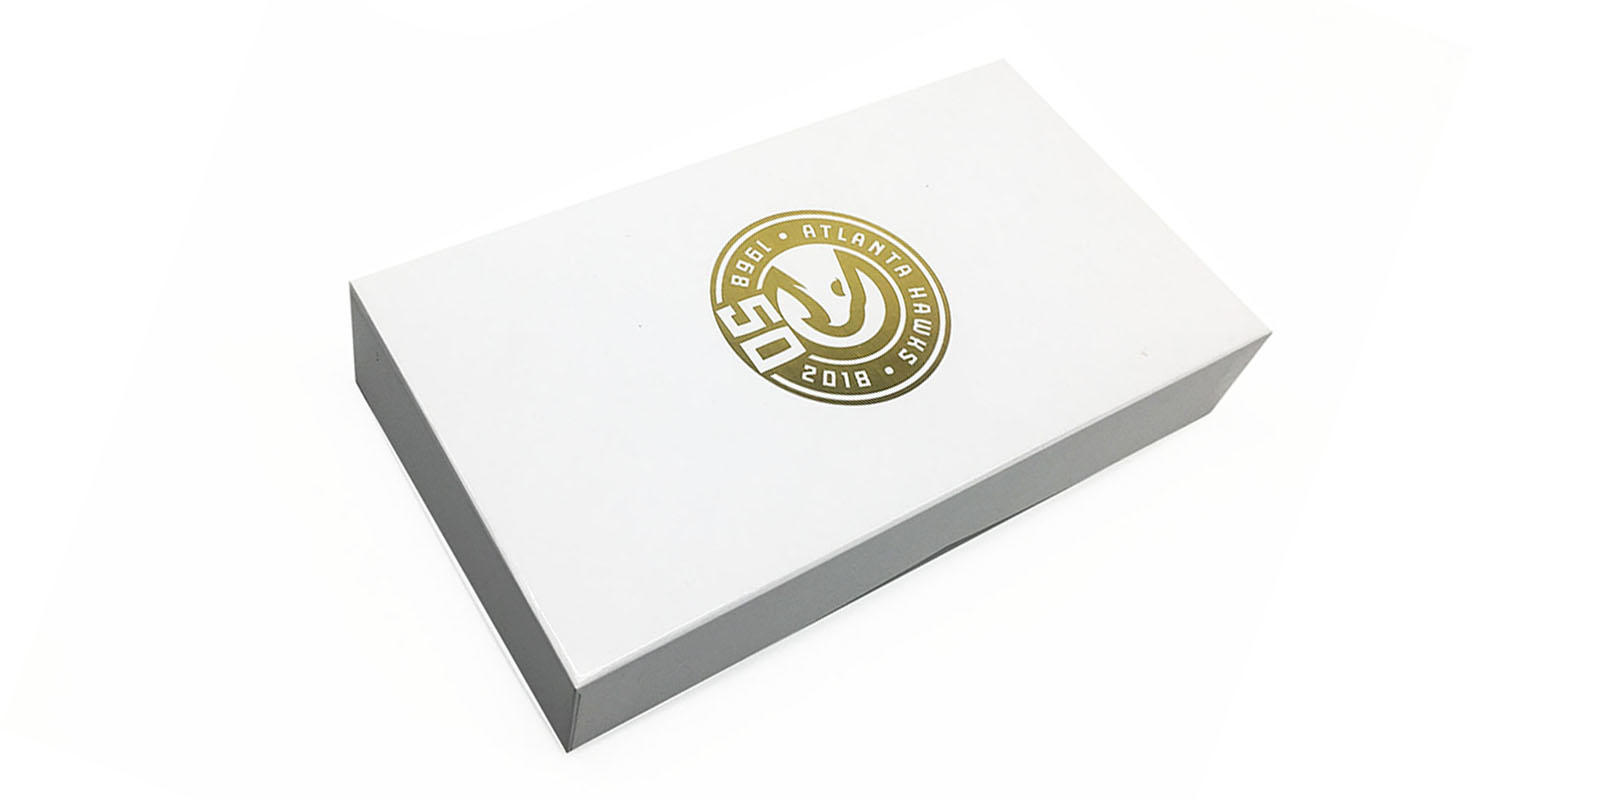 products clothing daily watch gift box sportrelated Mingyi Printing-Mingyi Printing